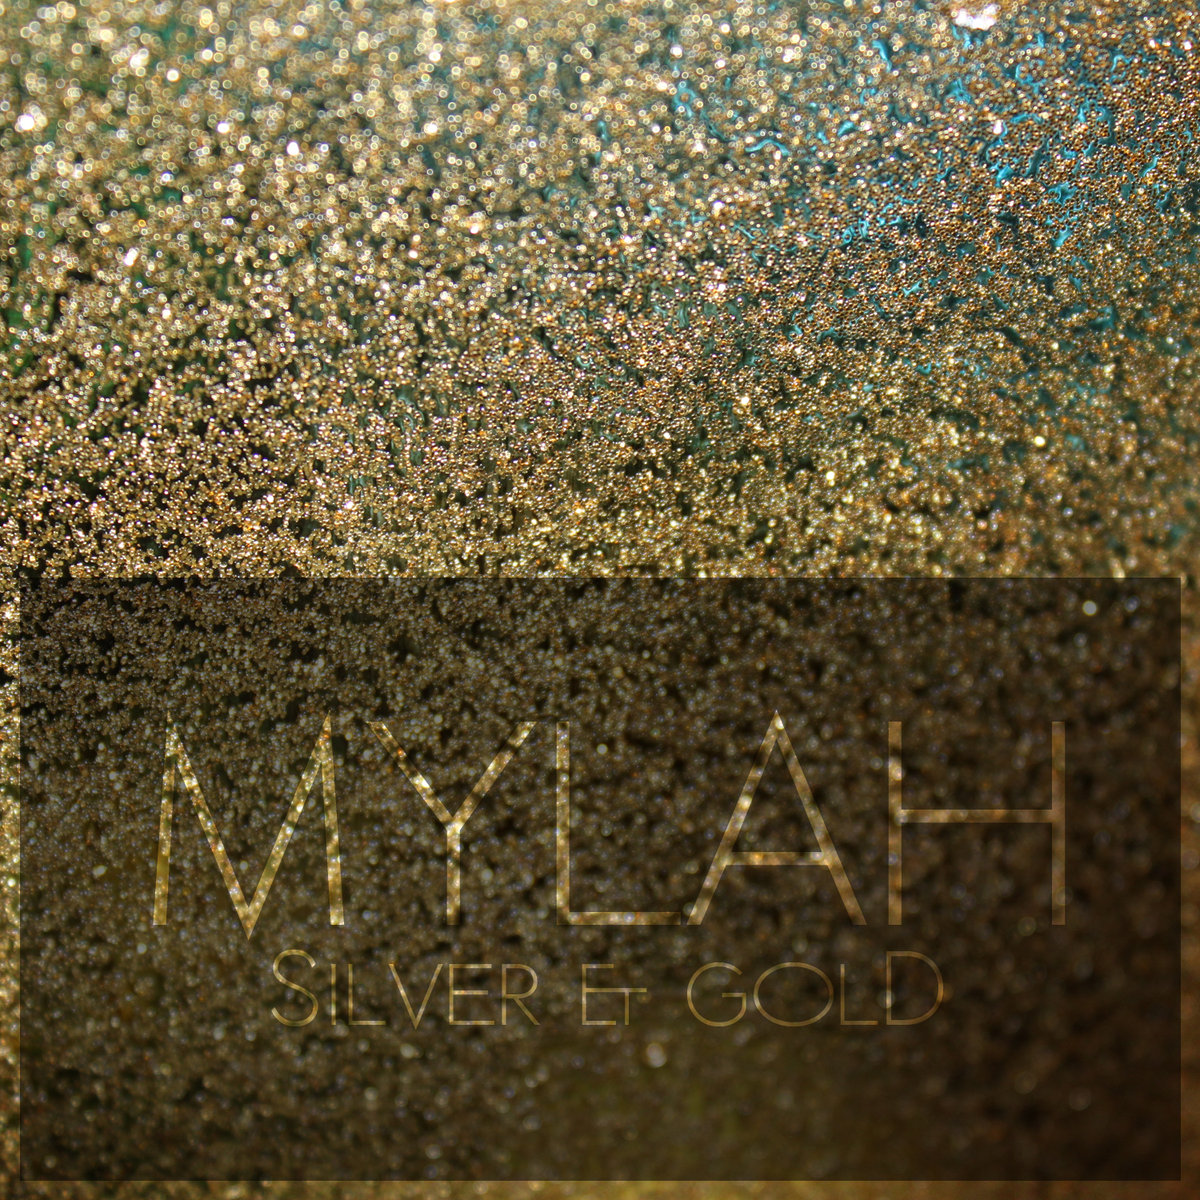 Mylah Silver and Gold EP